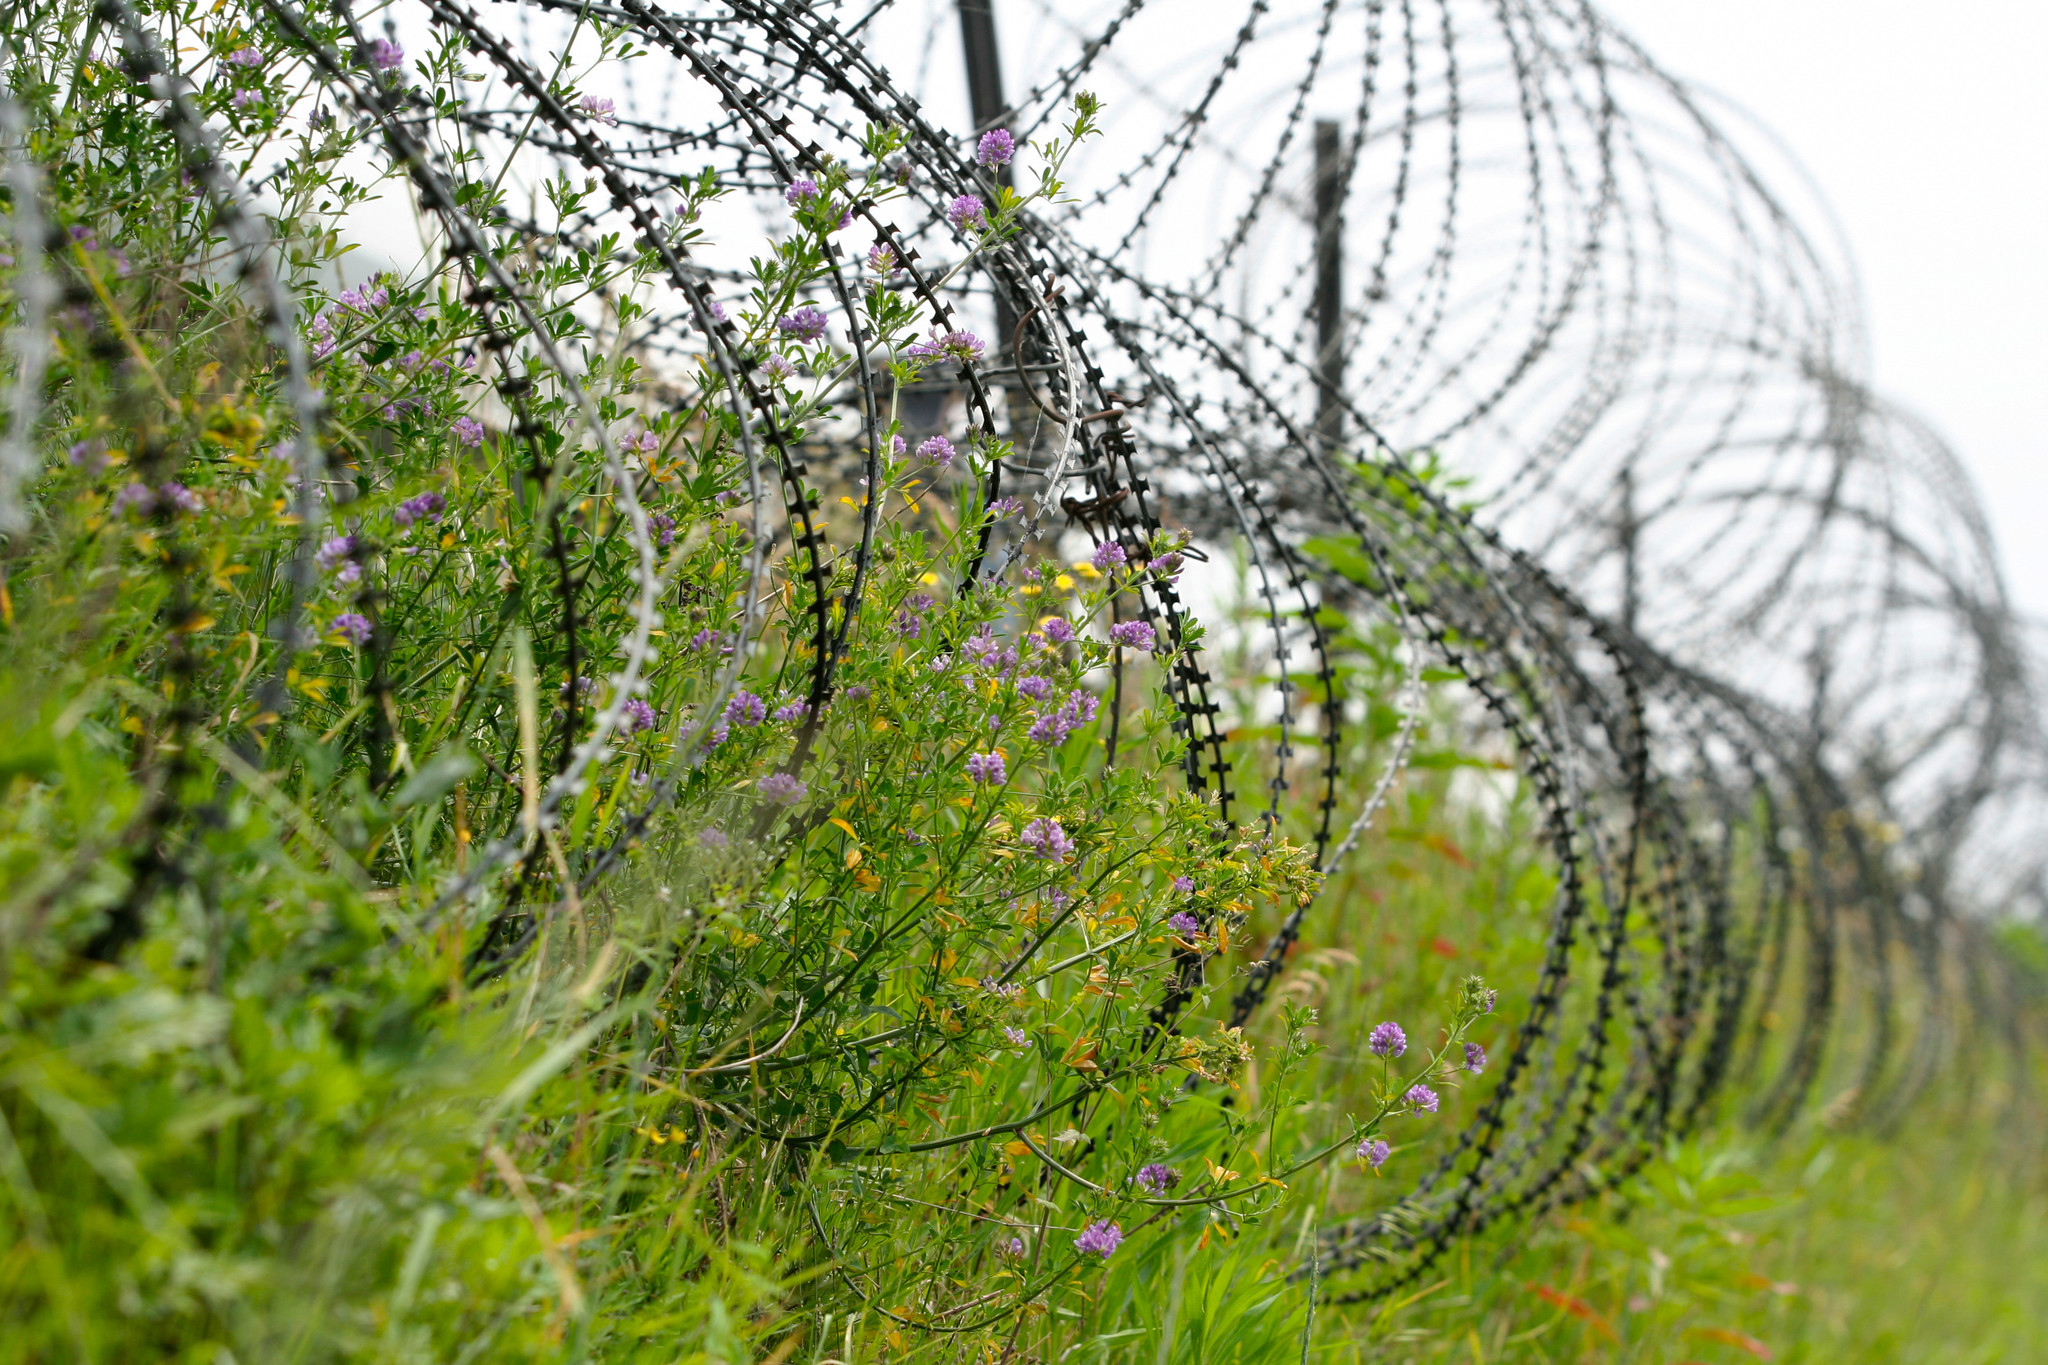 Wildflowers grow on the barbed wire on the southern edge of the Demilitarized Zone.